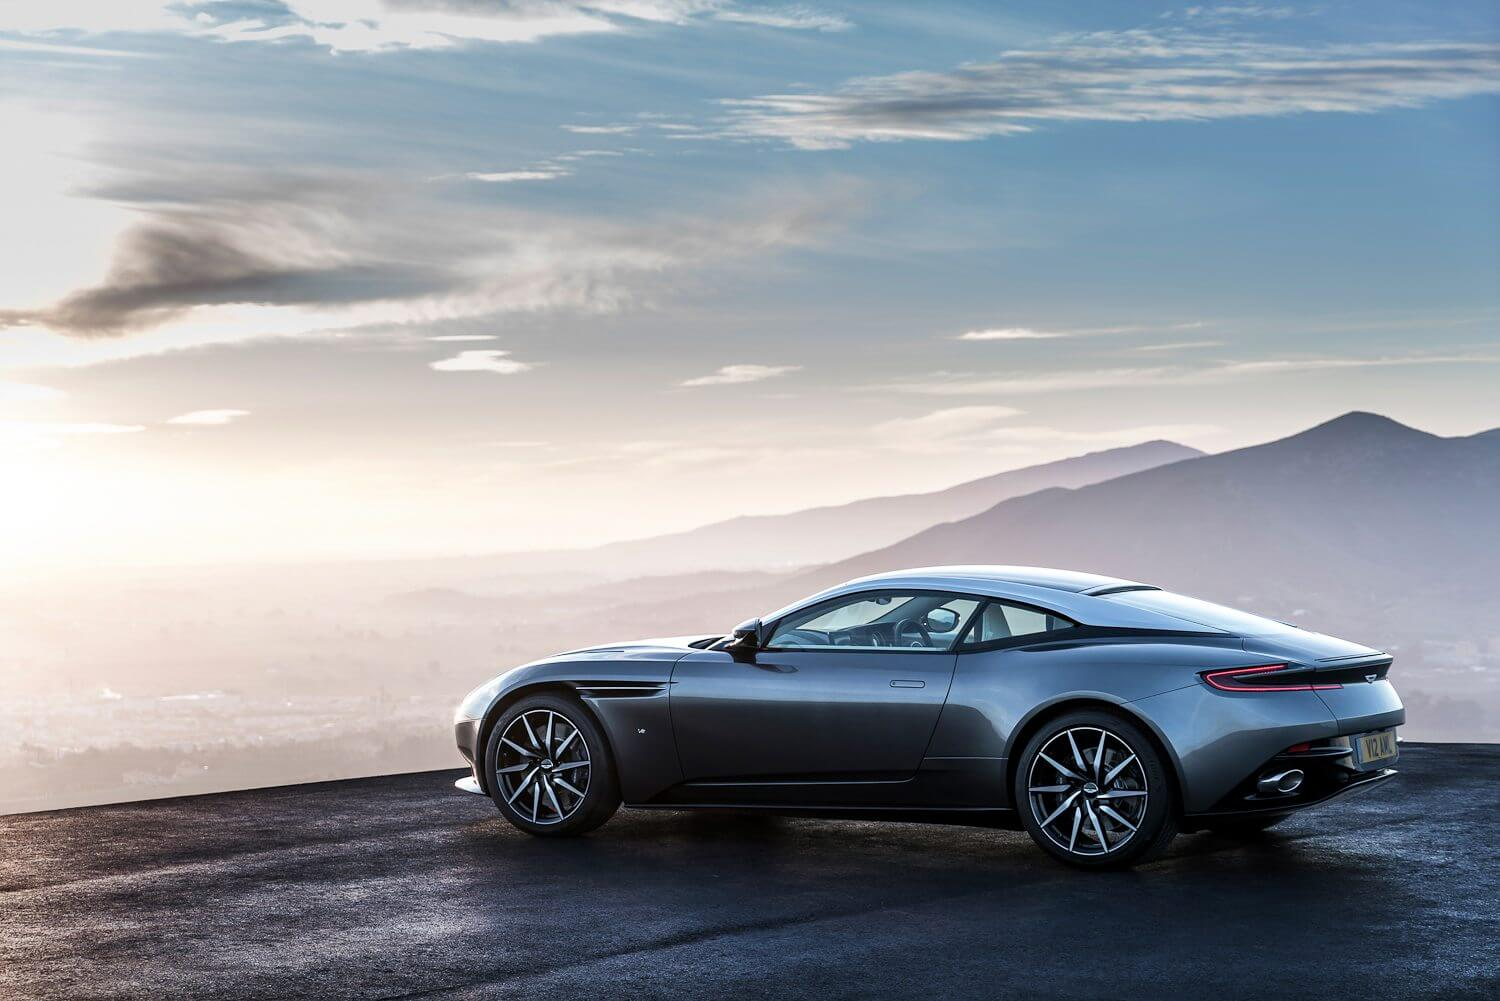 Aston Martin DB11 (6 of 44)